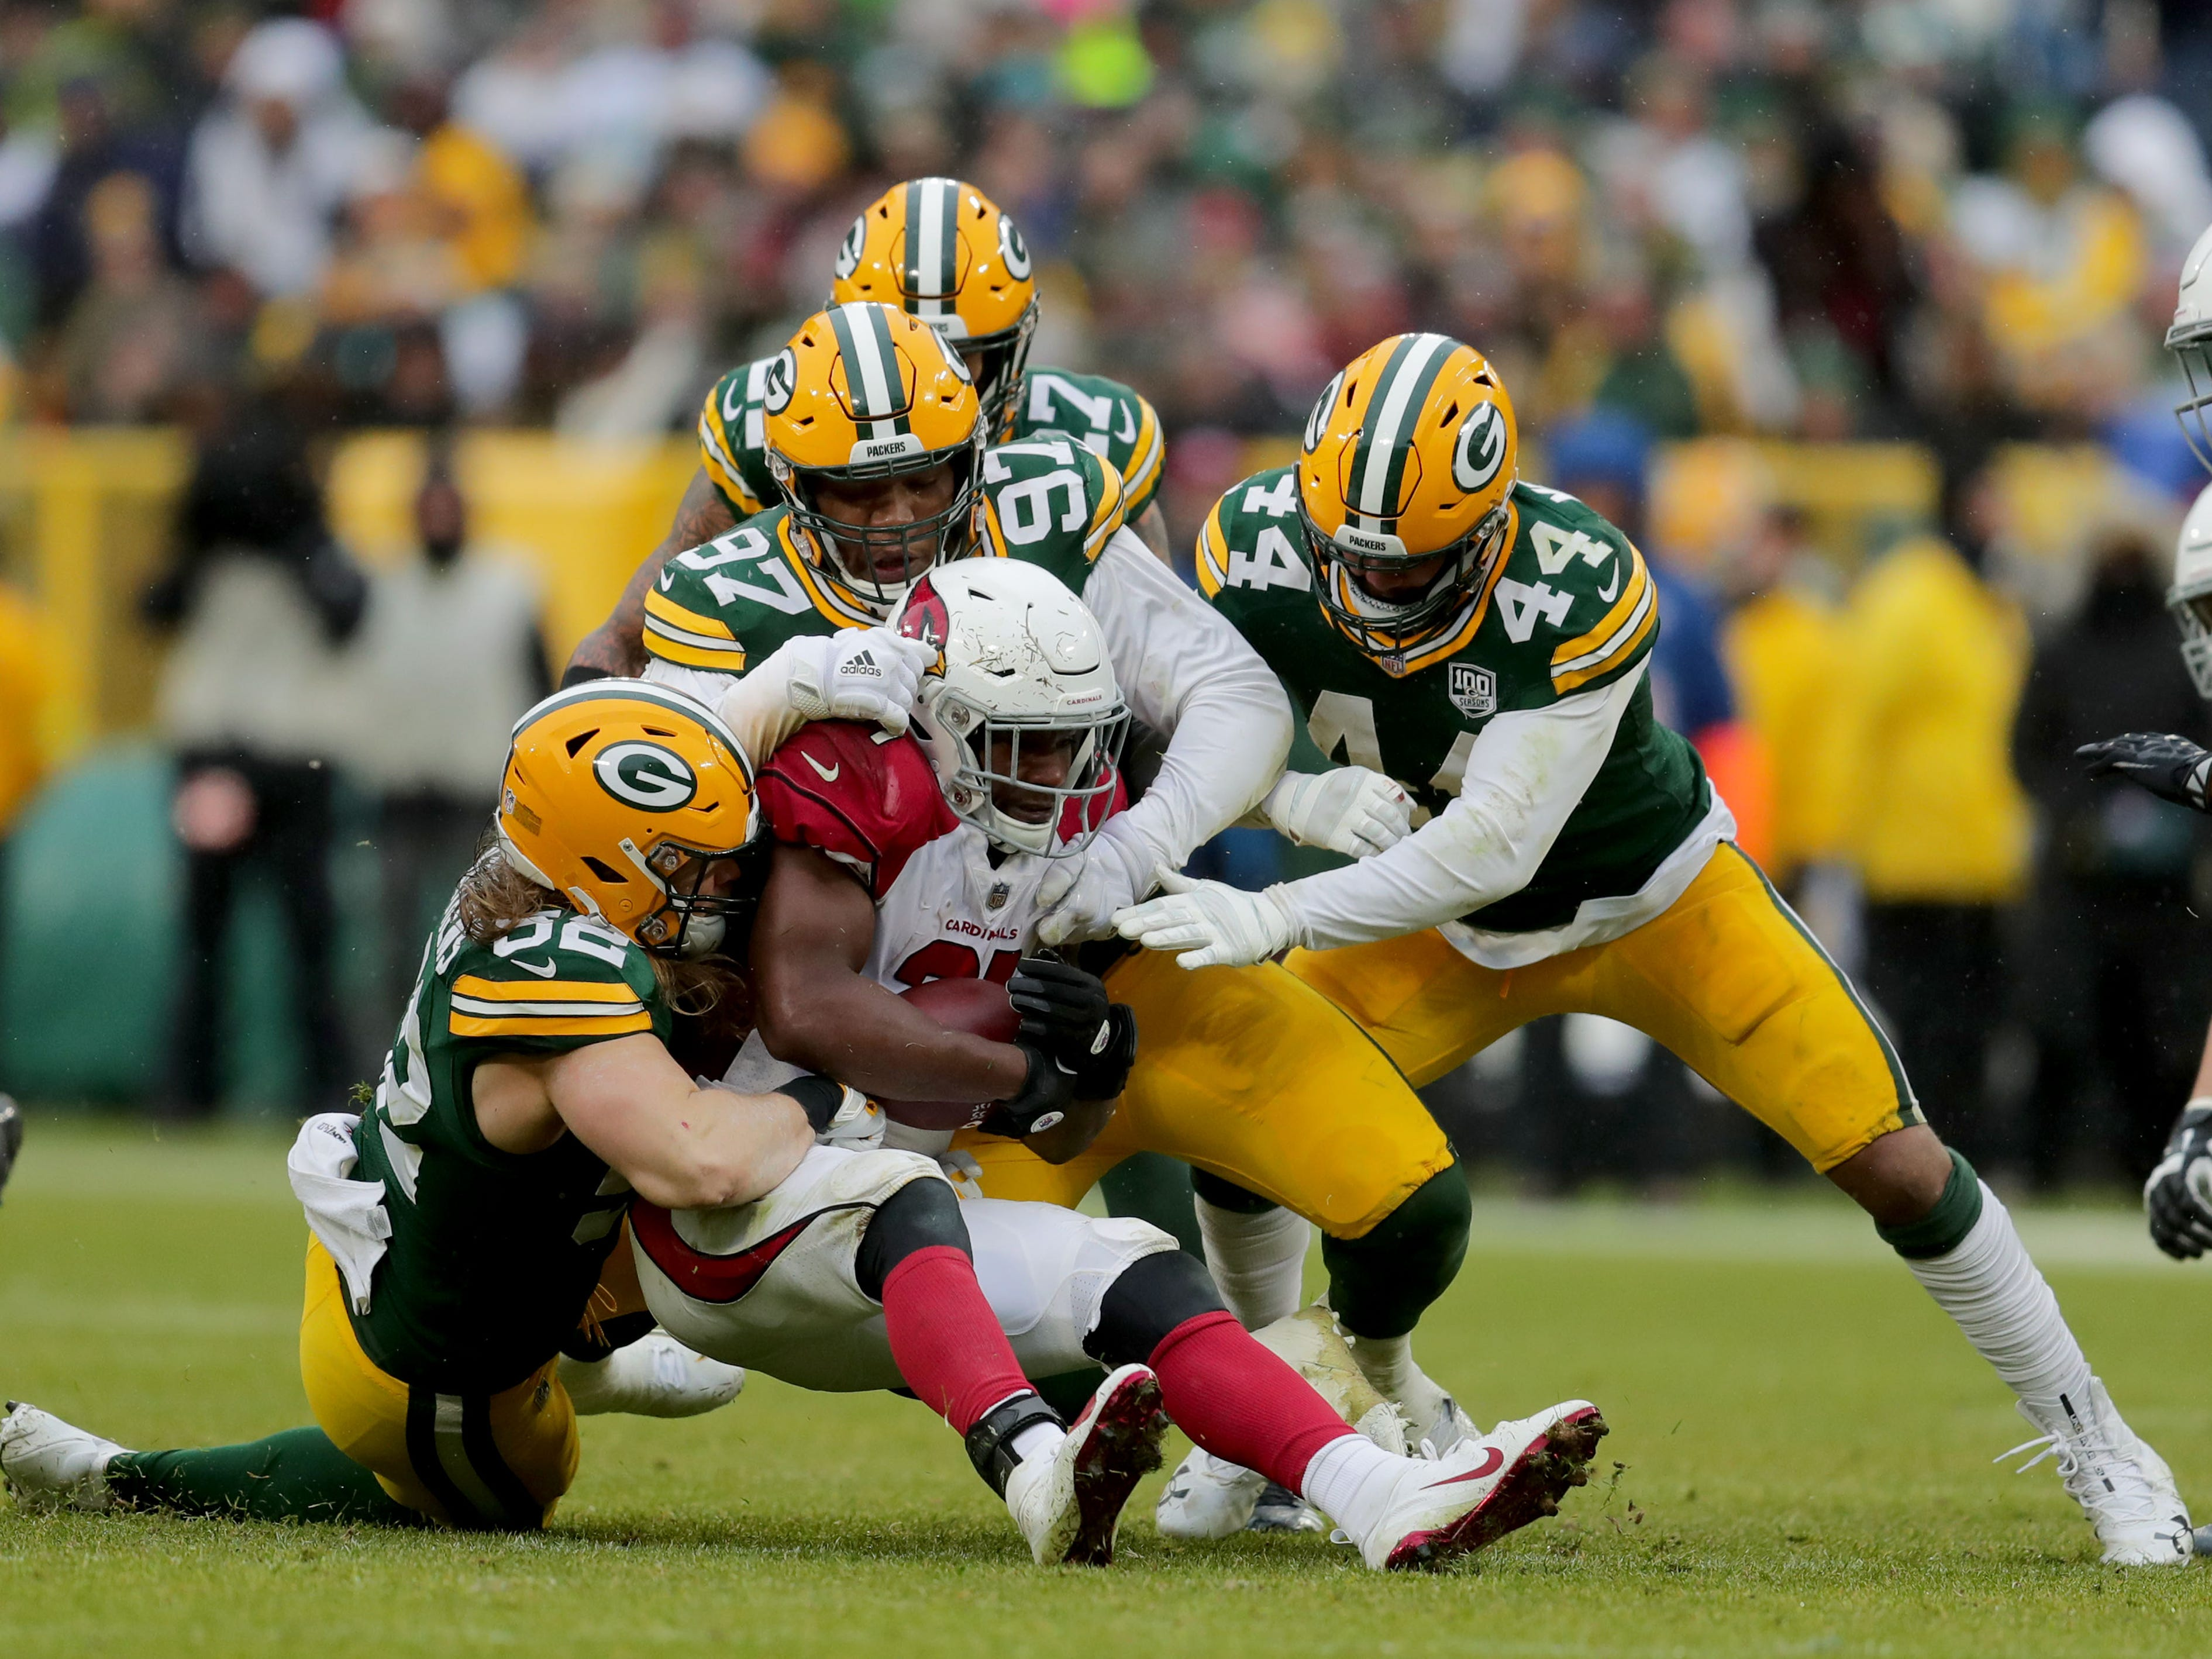 Green Bay Packers defenders tackle Arizona Cardinals running back D.J. Foster (37) during the 4th quarter of Green Bay Packers game 20-17 loss against the Arizona Cardinals on Sunday, December 2, 2018 at Lambeau Field in Green Bay, Wis. Mike De Sisti / USA TODAY NETWORK-Wis